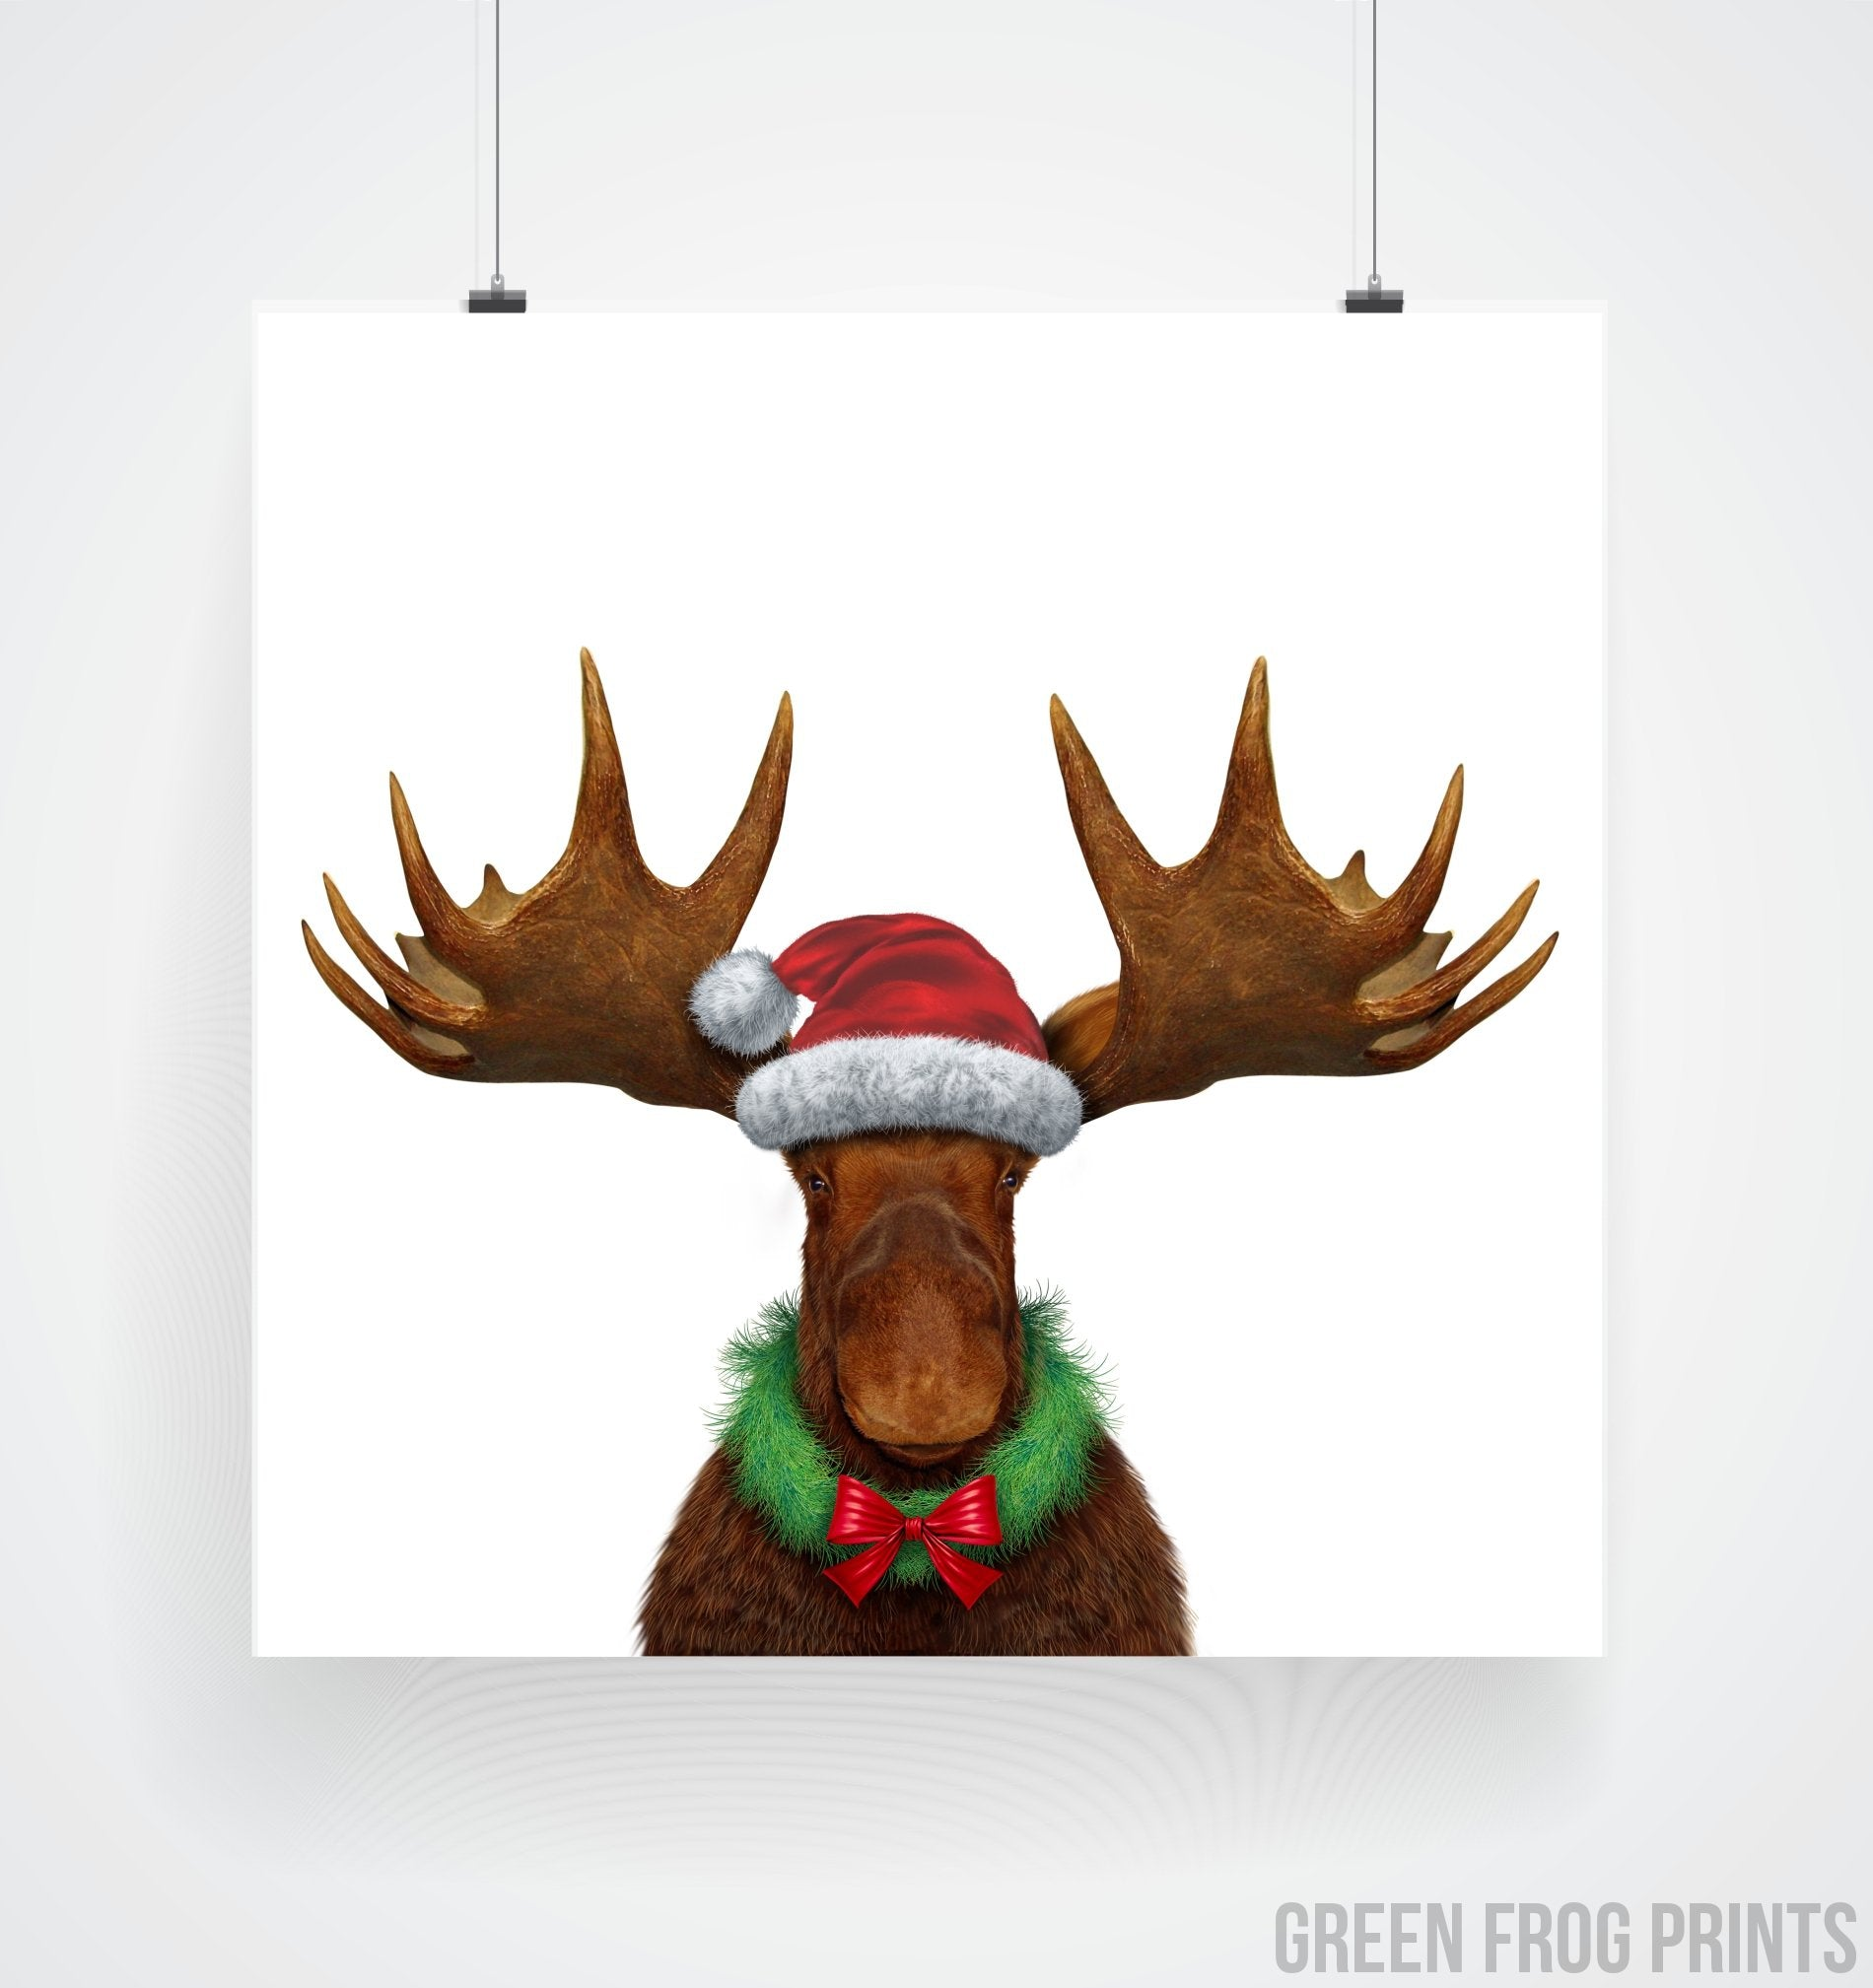 446bae36 Funny Realistic Christmas Moose Poster Print Cool Unusual Holiday Decor  Picture Art